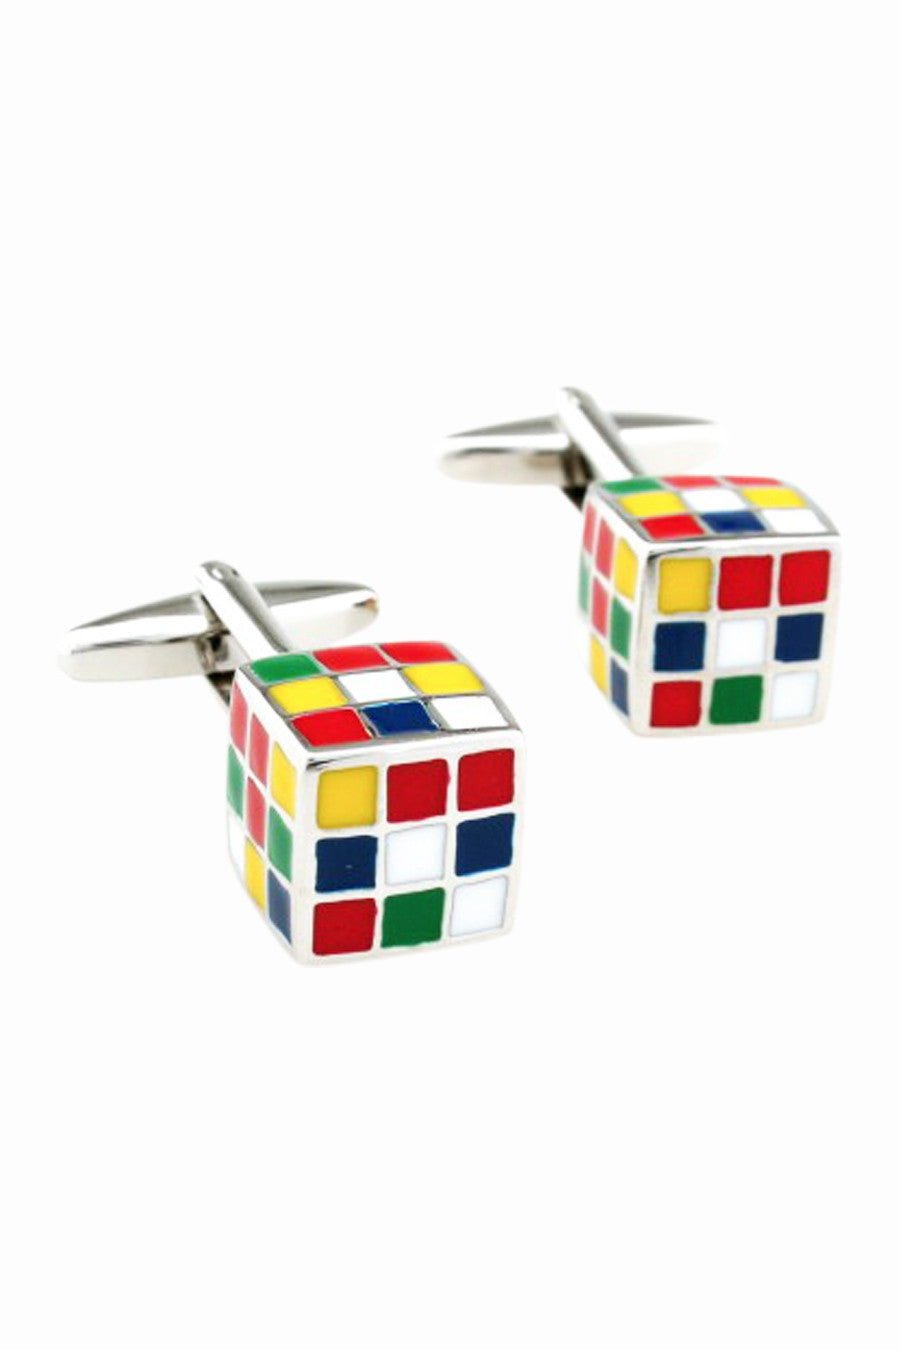 Cube Men's Dress Shirt Cufflinks